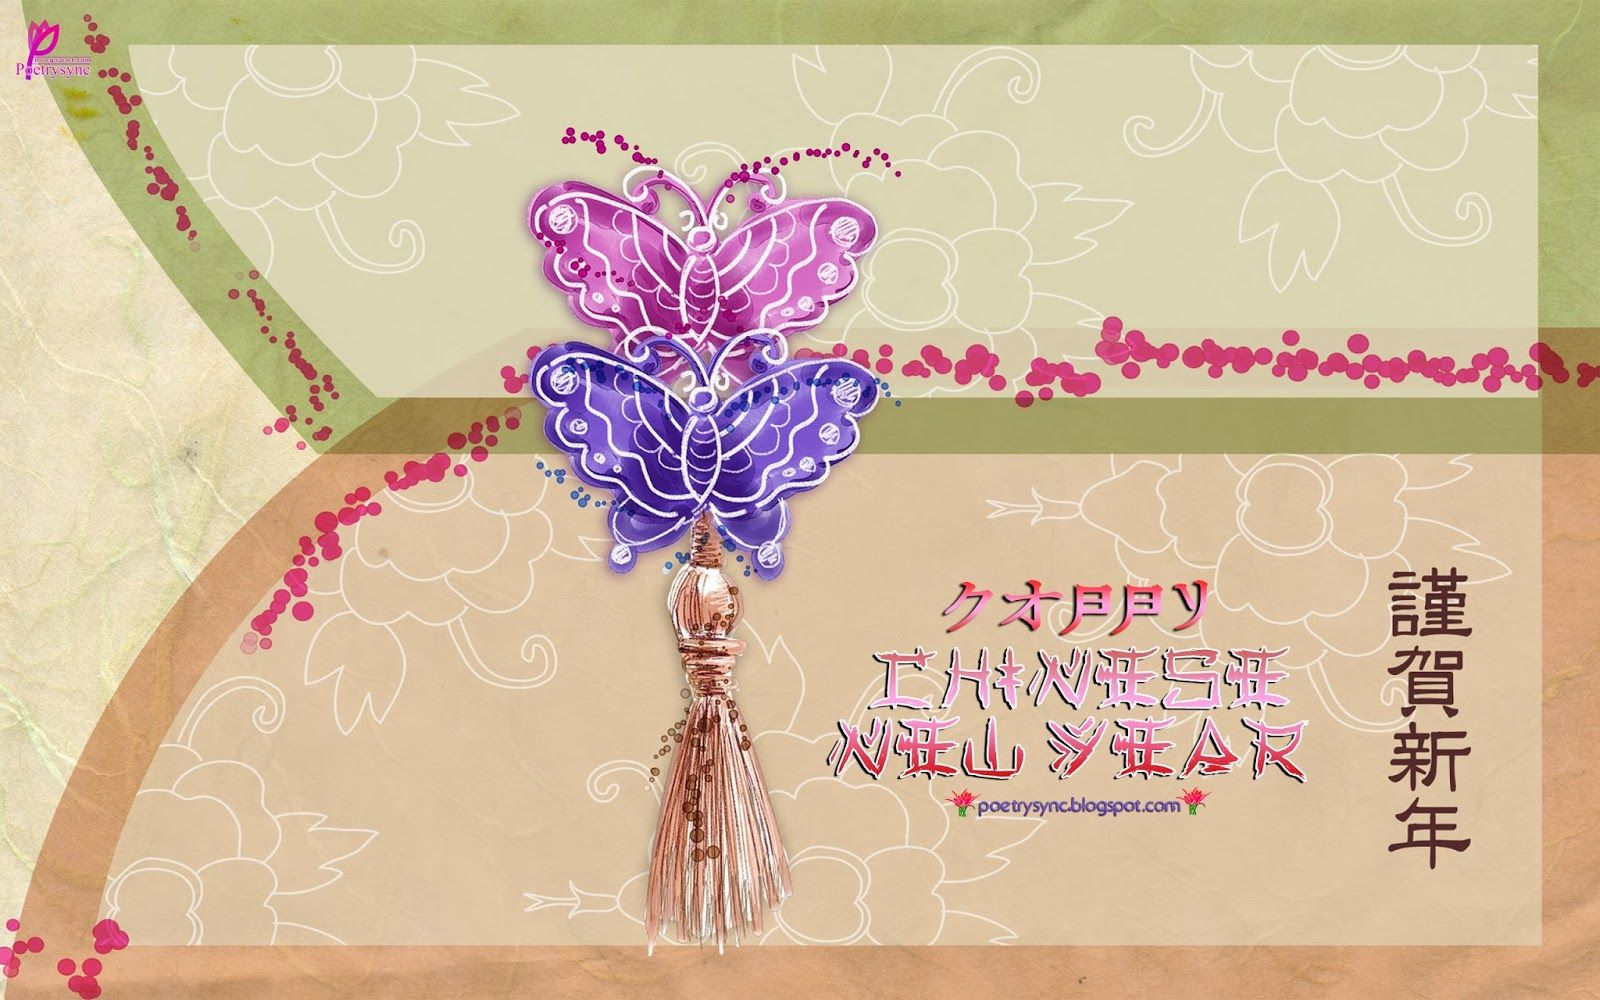 Chinese Lunar New Year Wishes Image Tet New Year HD